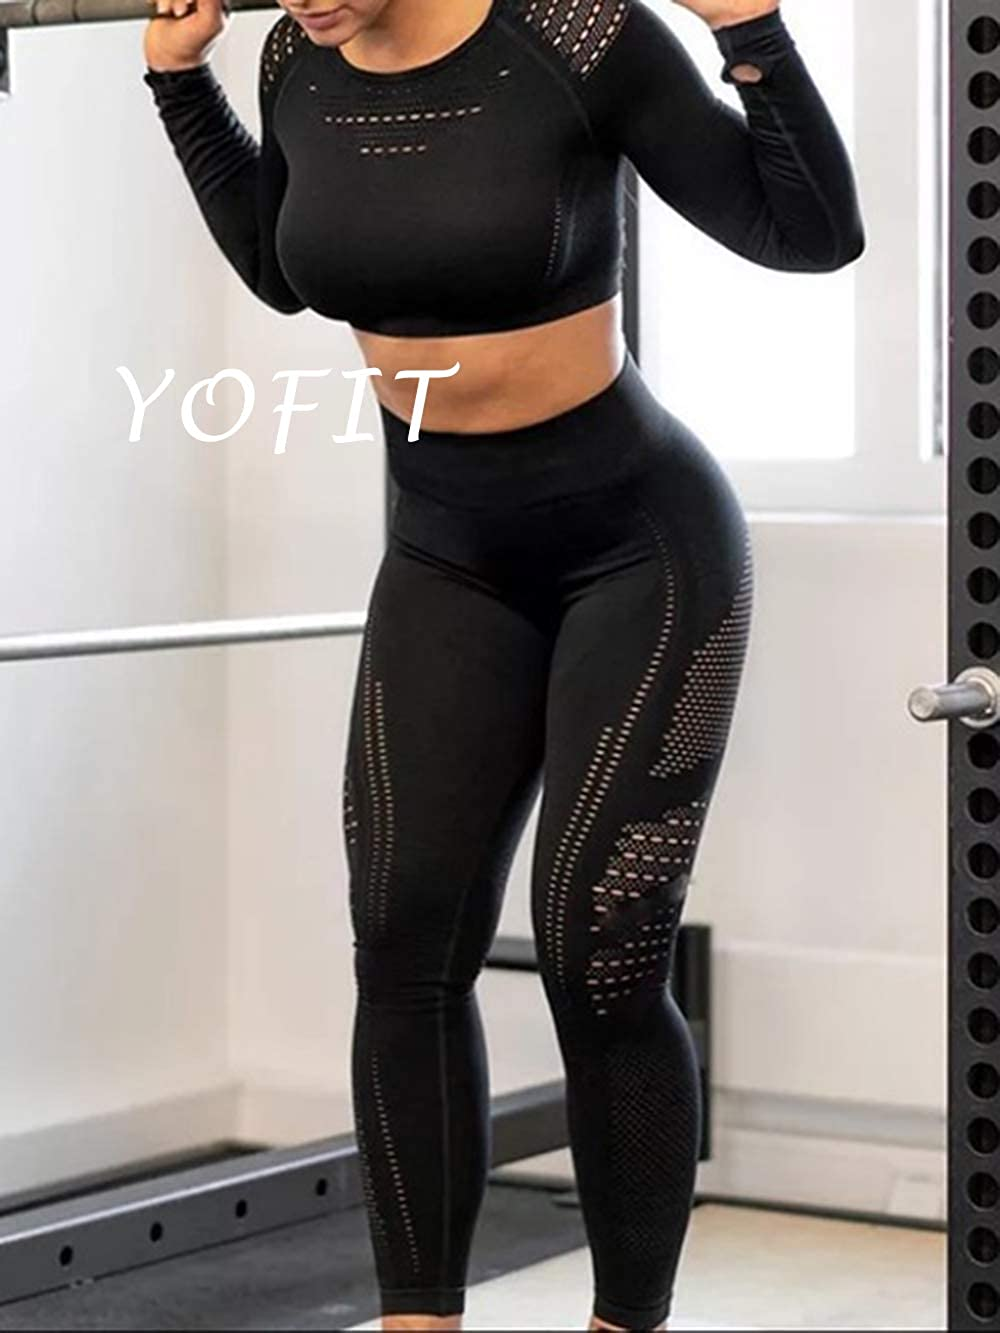 YOFIT Womens Workout Outfit 2 Pieces Seamless High Waist Yoga Leggings with Long Sleeve Crop Top Gym Clothes Set